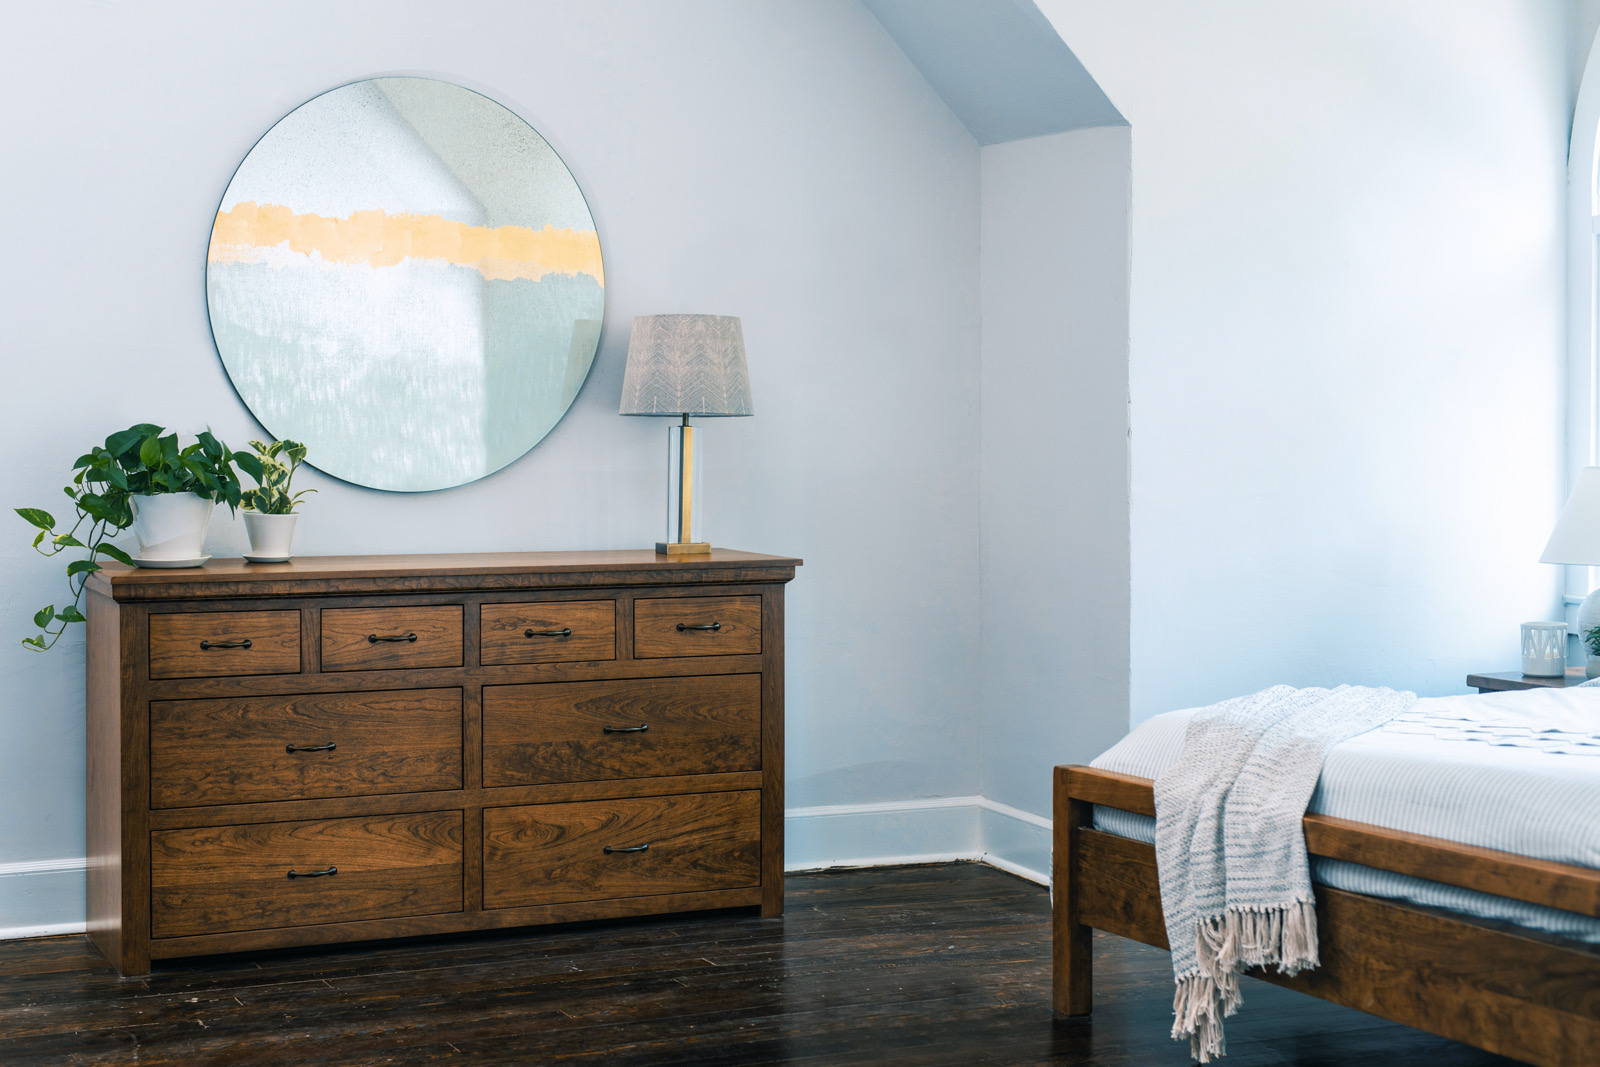 Matching Beds and Dressers: Is It a Good Idea?